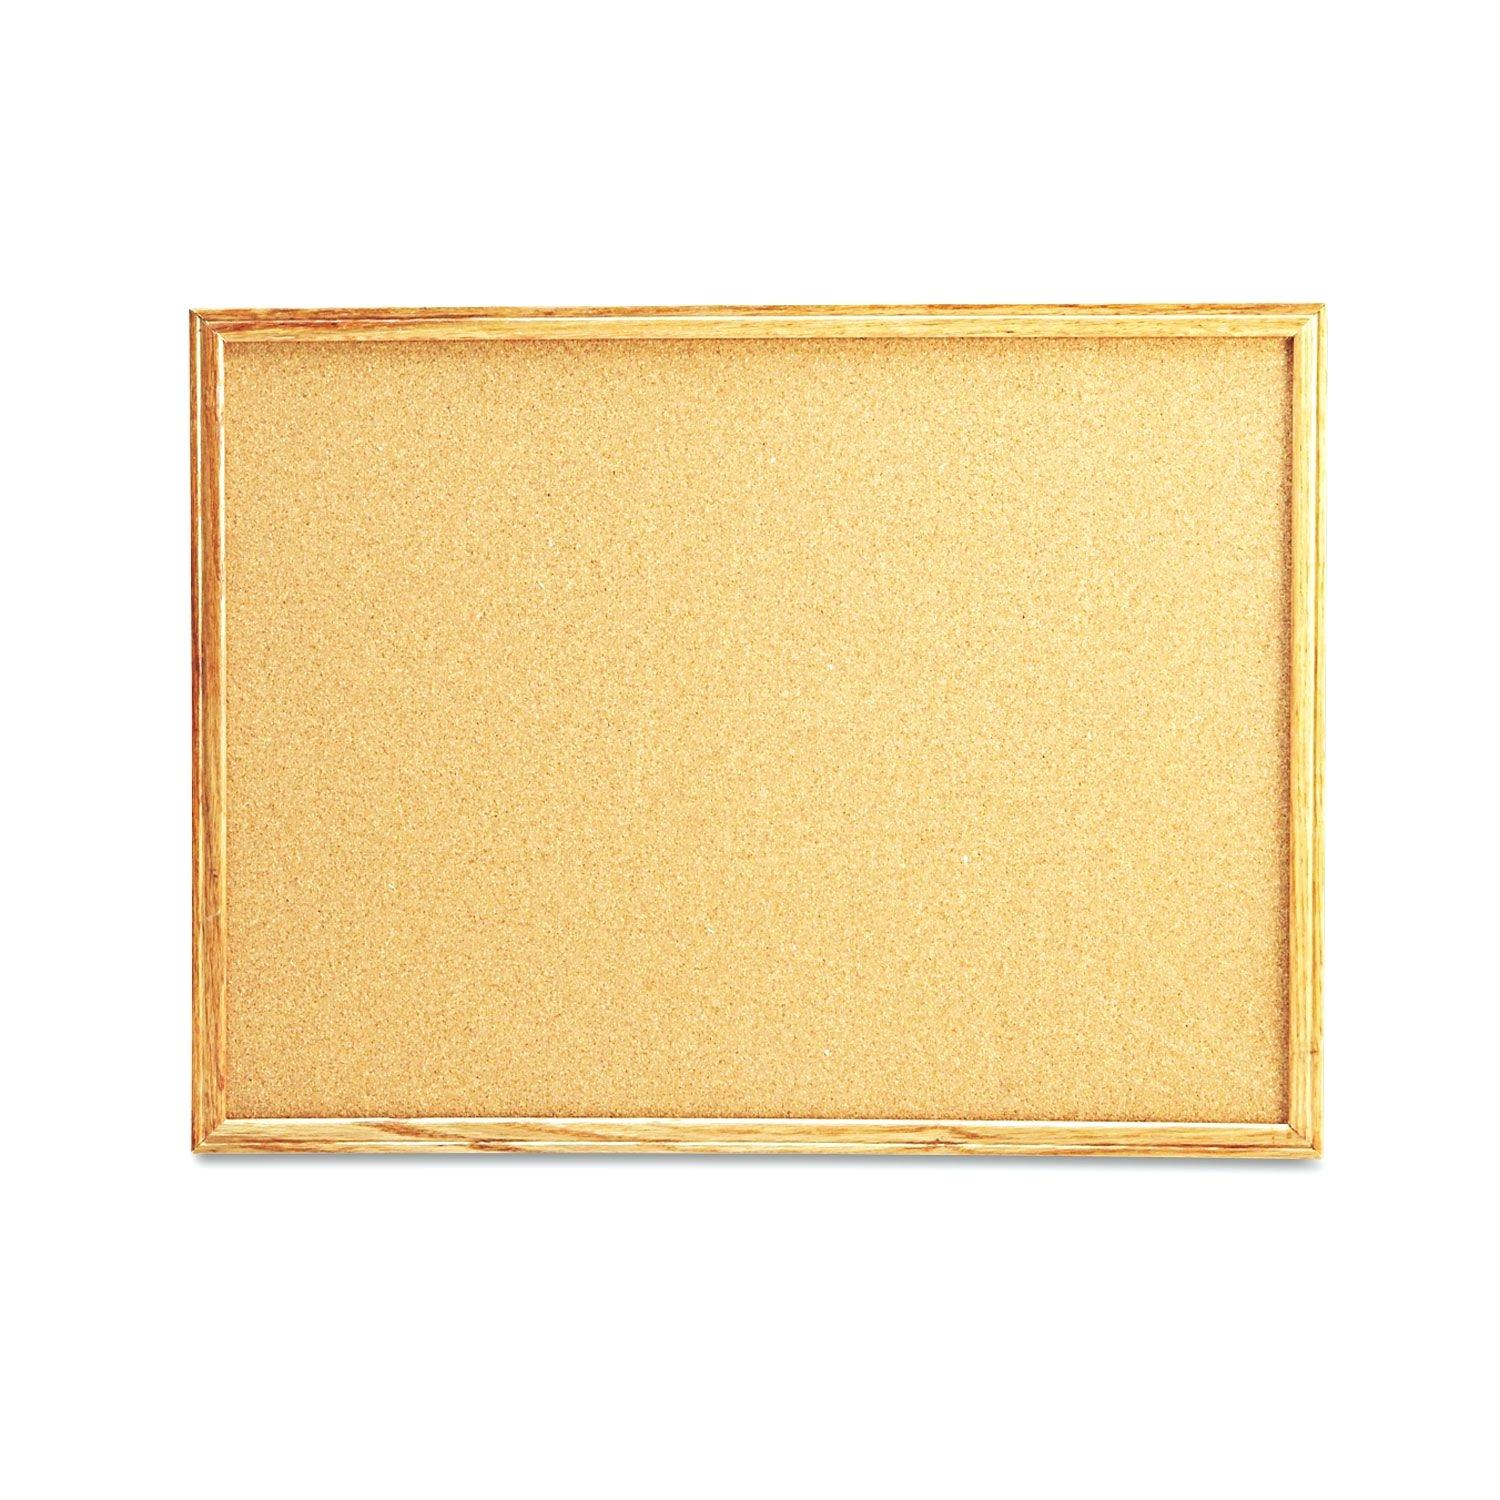 Framed cork board free public domain clipart. Picture expiredpatents co